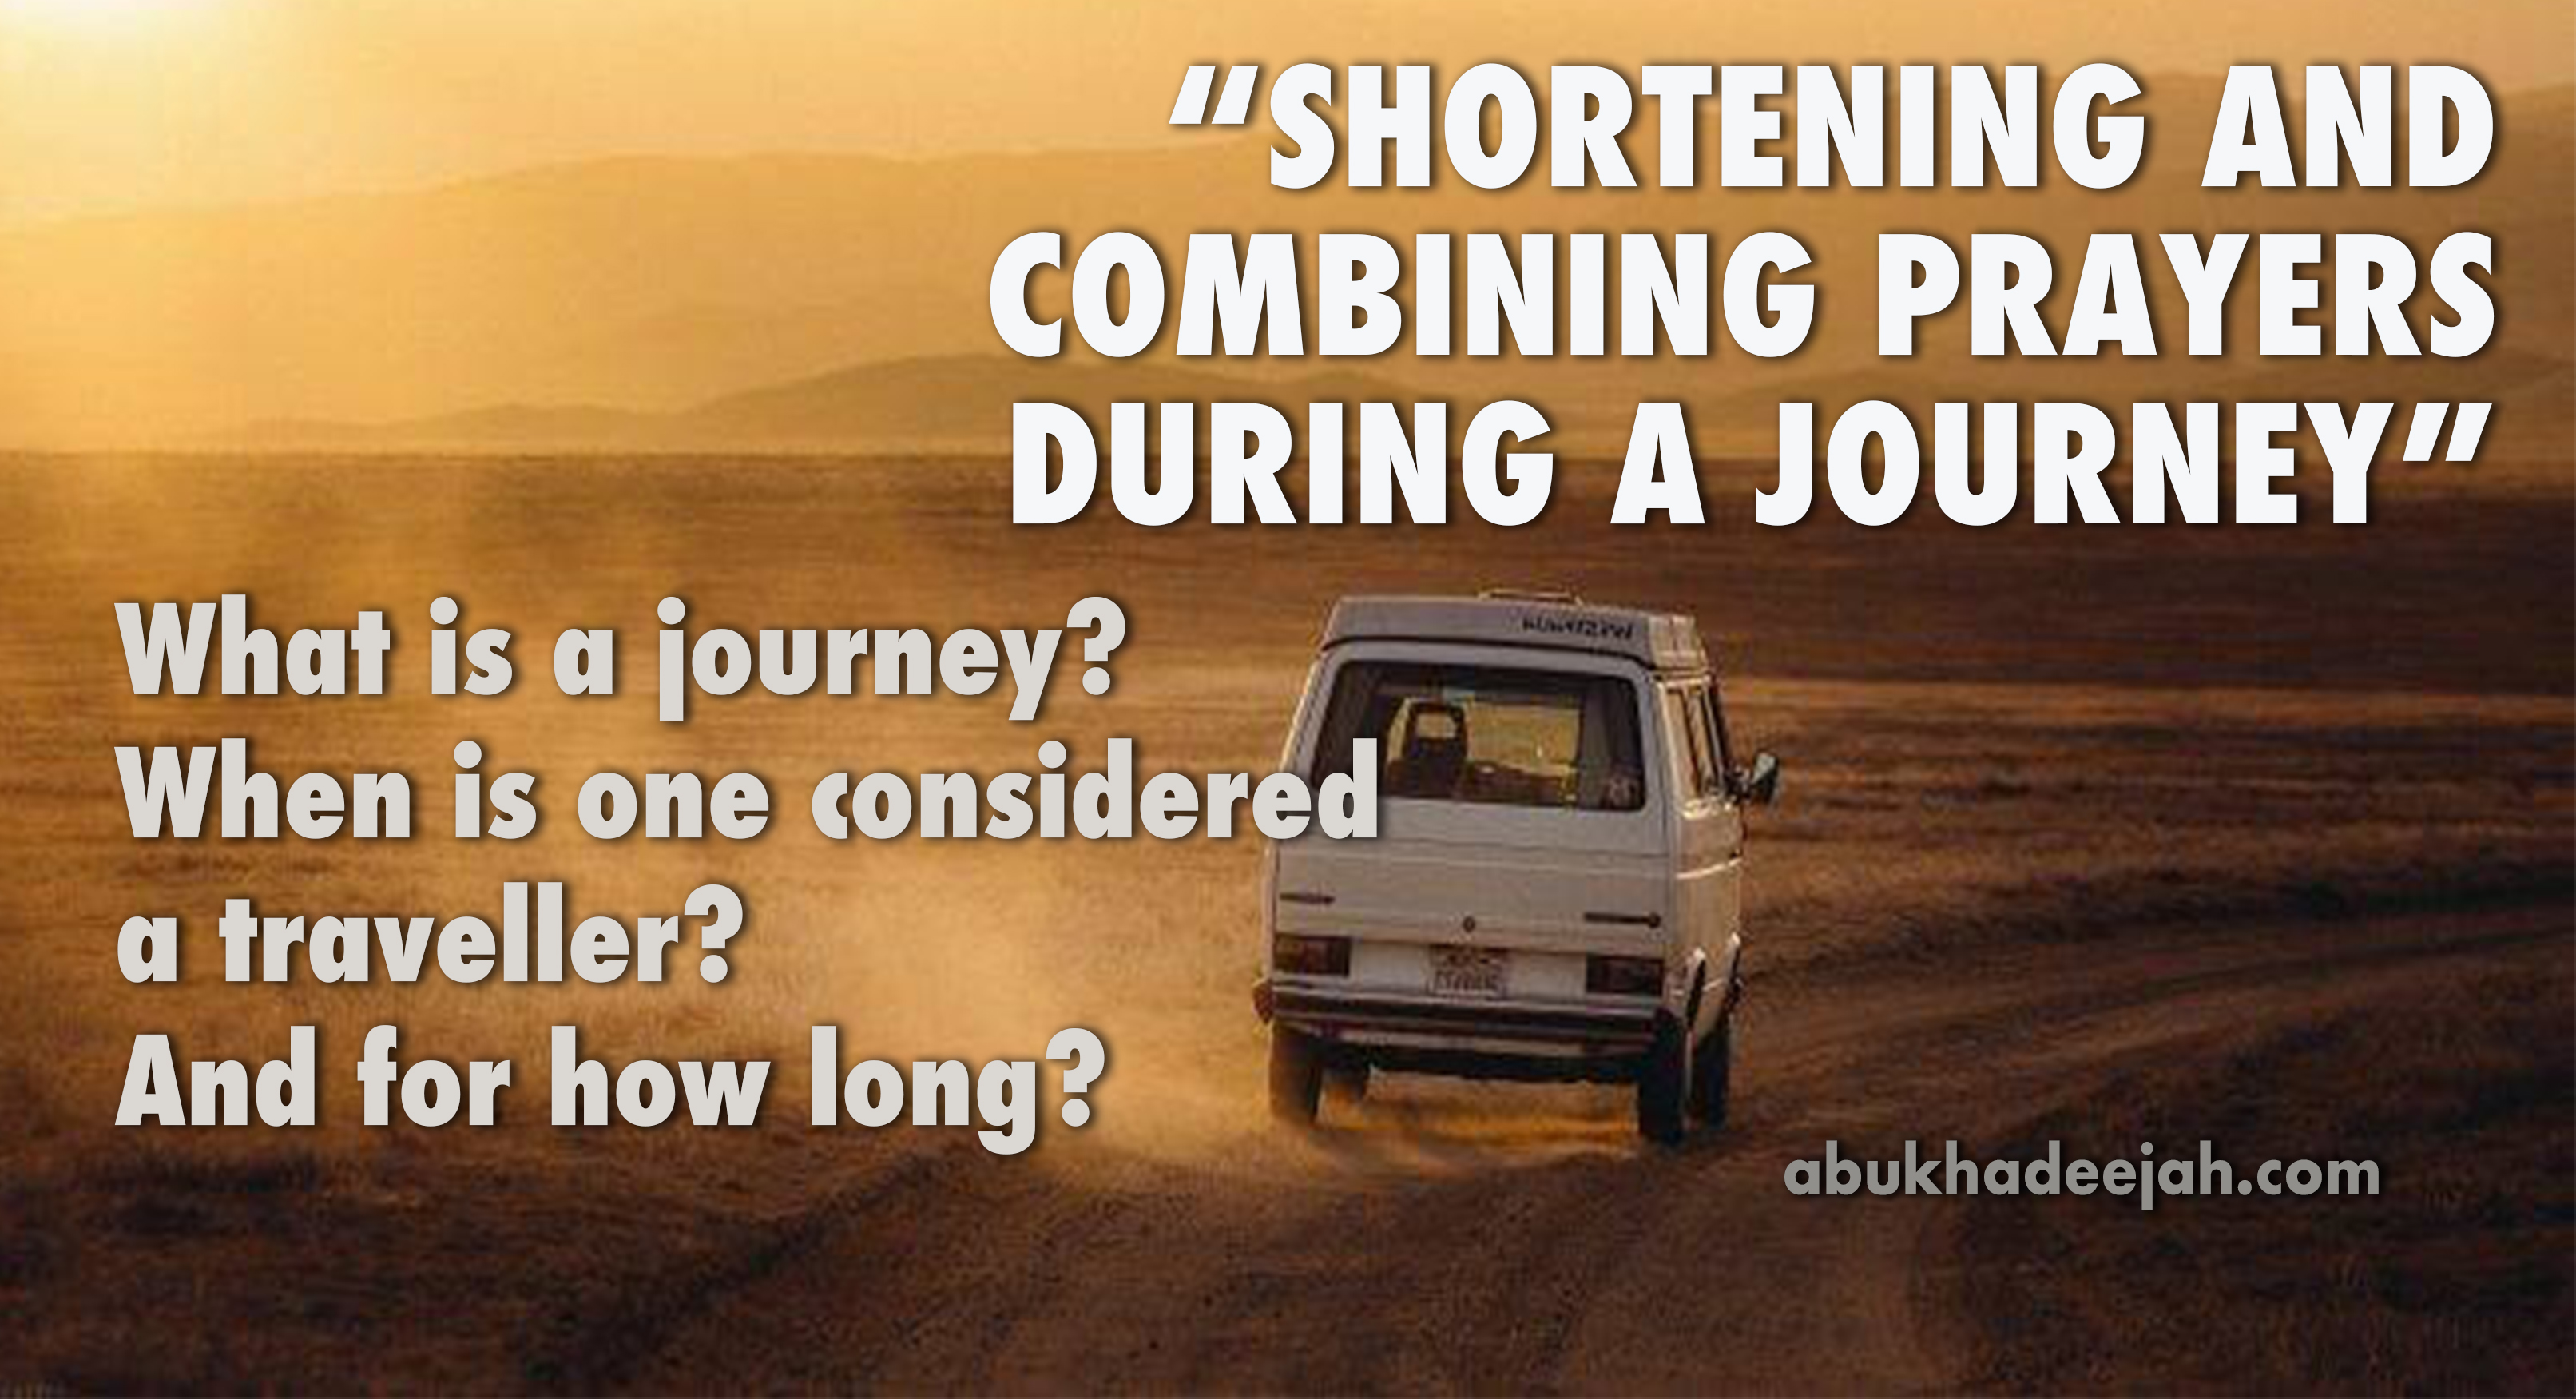 What is a journey in Islam? When is one considered to be a